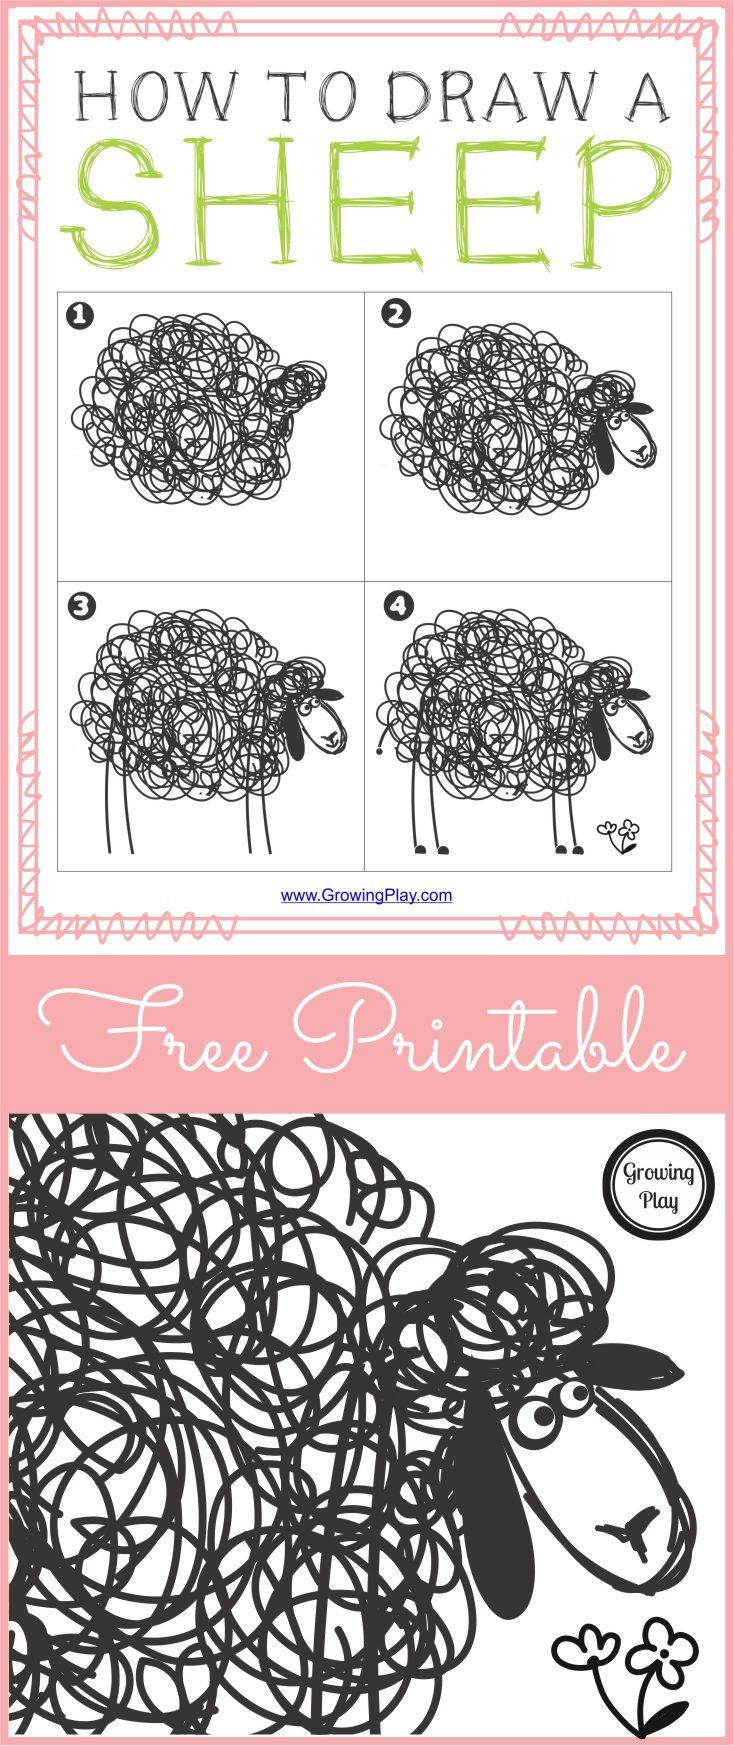 How to Draw Sheep - Free Printable